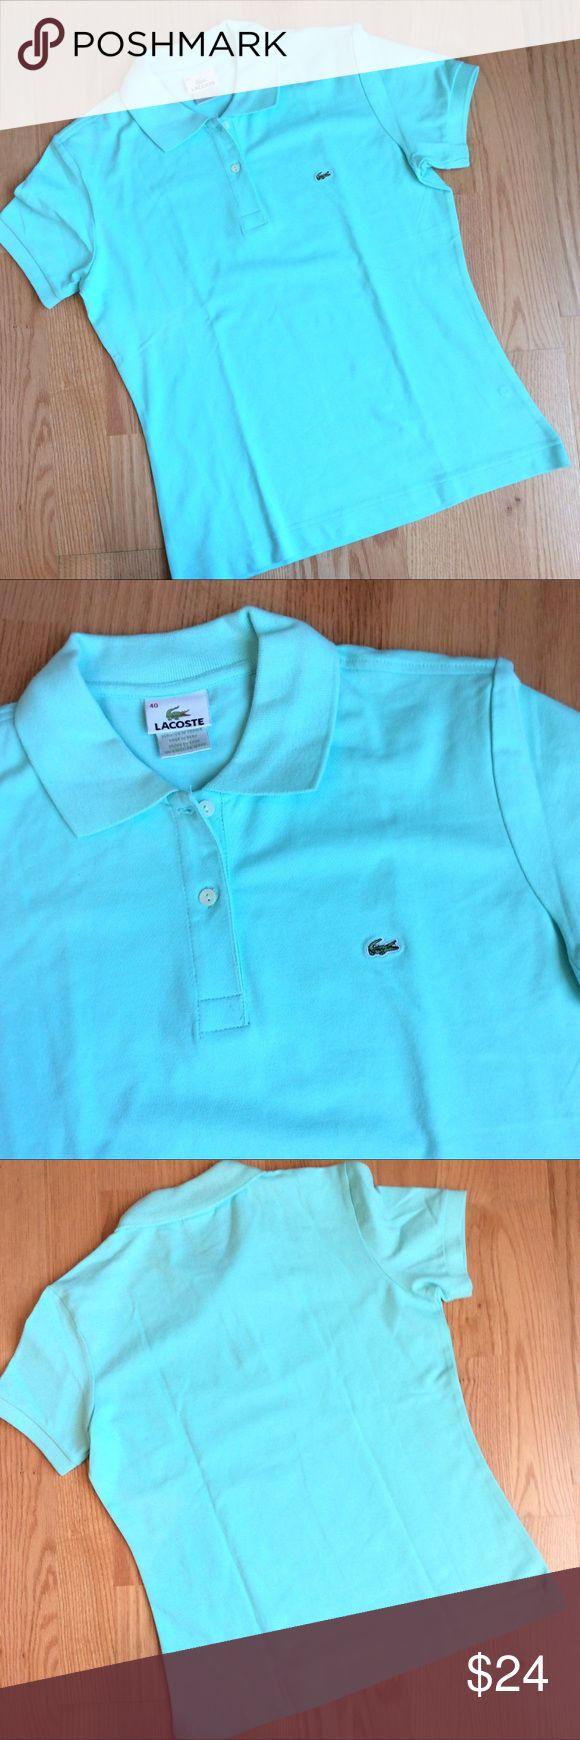 "- Lacoste - classic fit pique polo shirt Short sleeve, Size 40, ribbed collar and armbands, fabric is 94% cotton and 6% elastanne, length 23"" chest 18"" Lacoste Tops"